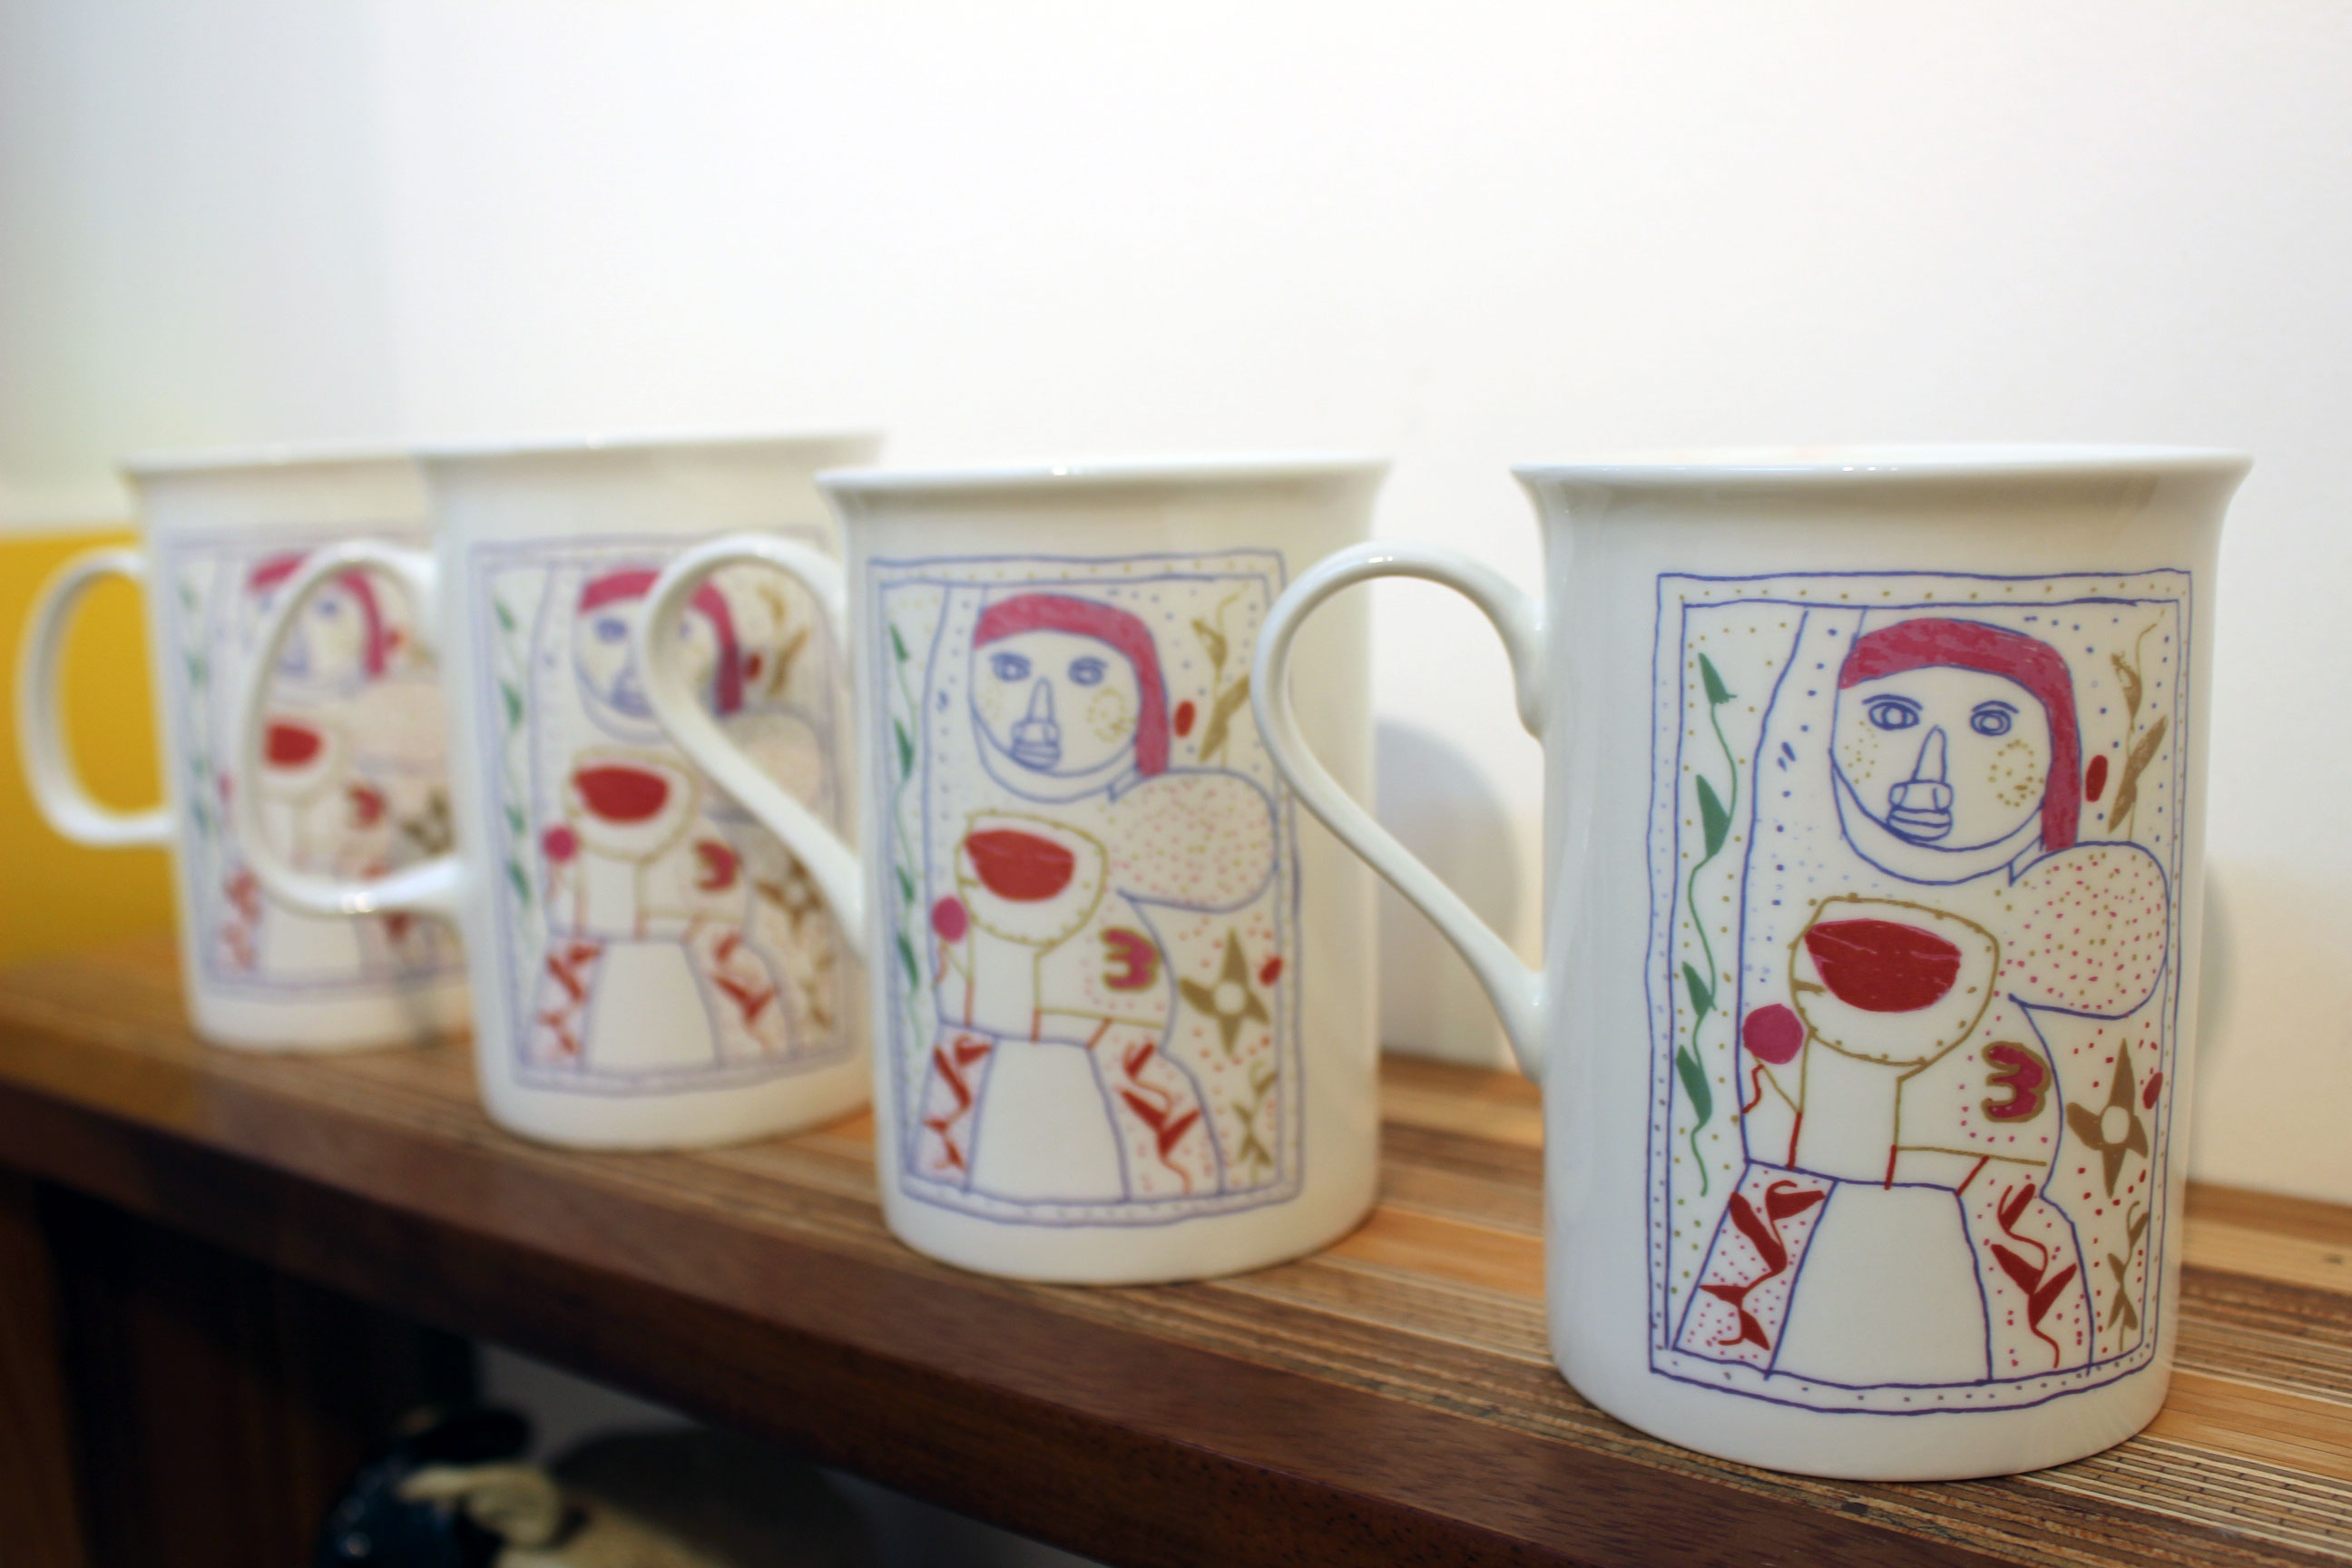 Launch of 30th Birthday mugs for Learning Disability Week 2014